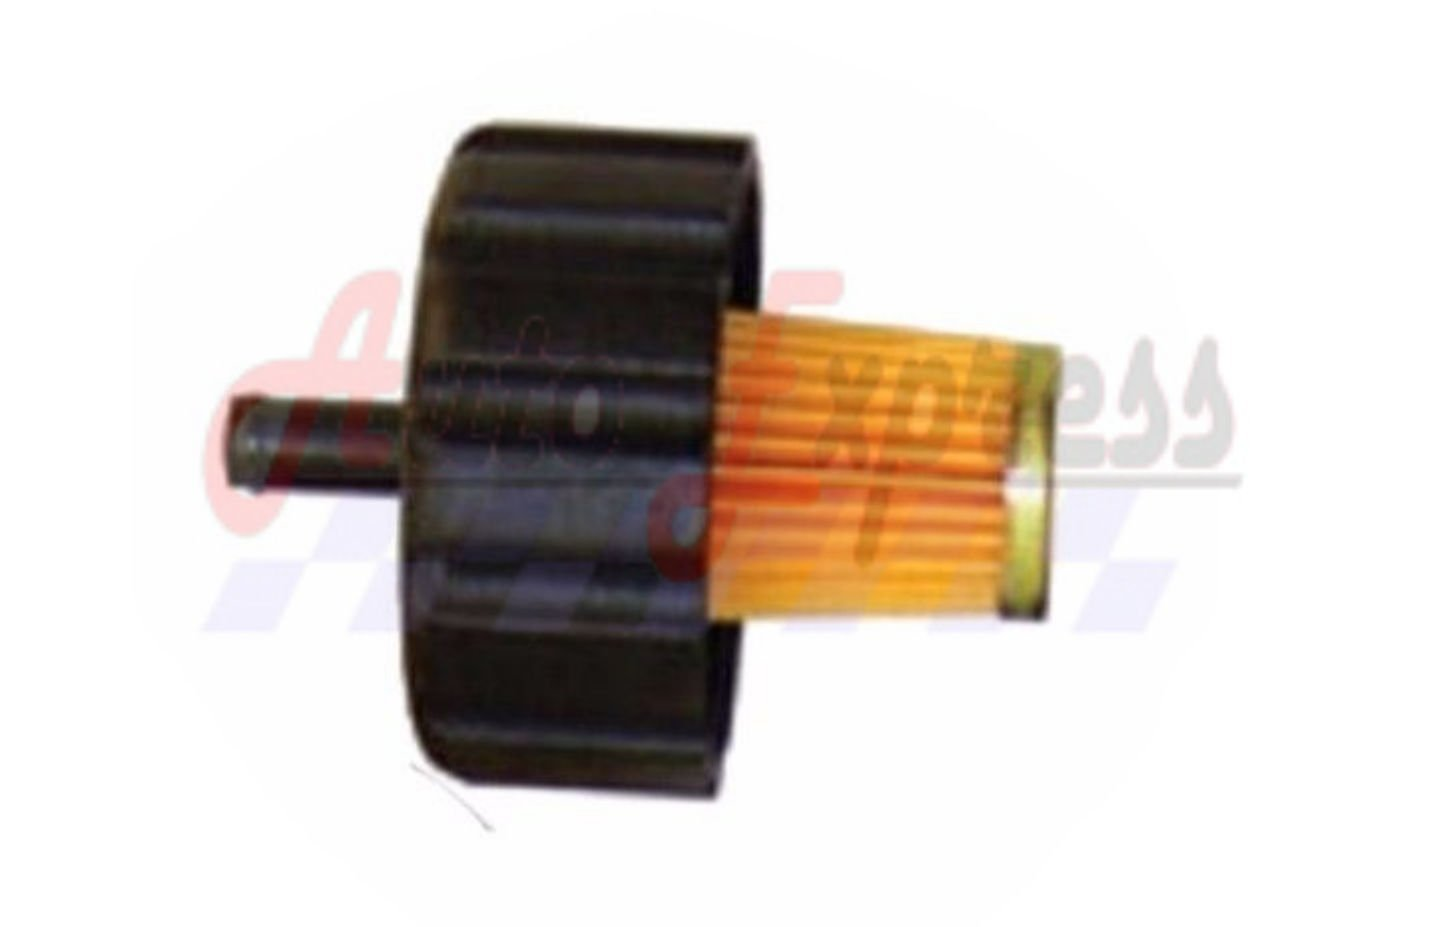 Cheap Golf Fuel Filter Find Deals On Line At Yamaha Filters Get Quotations Gas Tank For Cart G2 G9 G11 8r4 24560